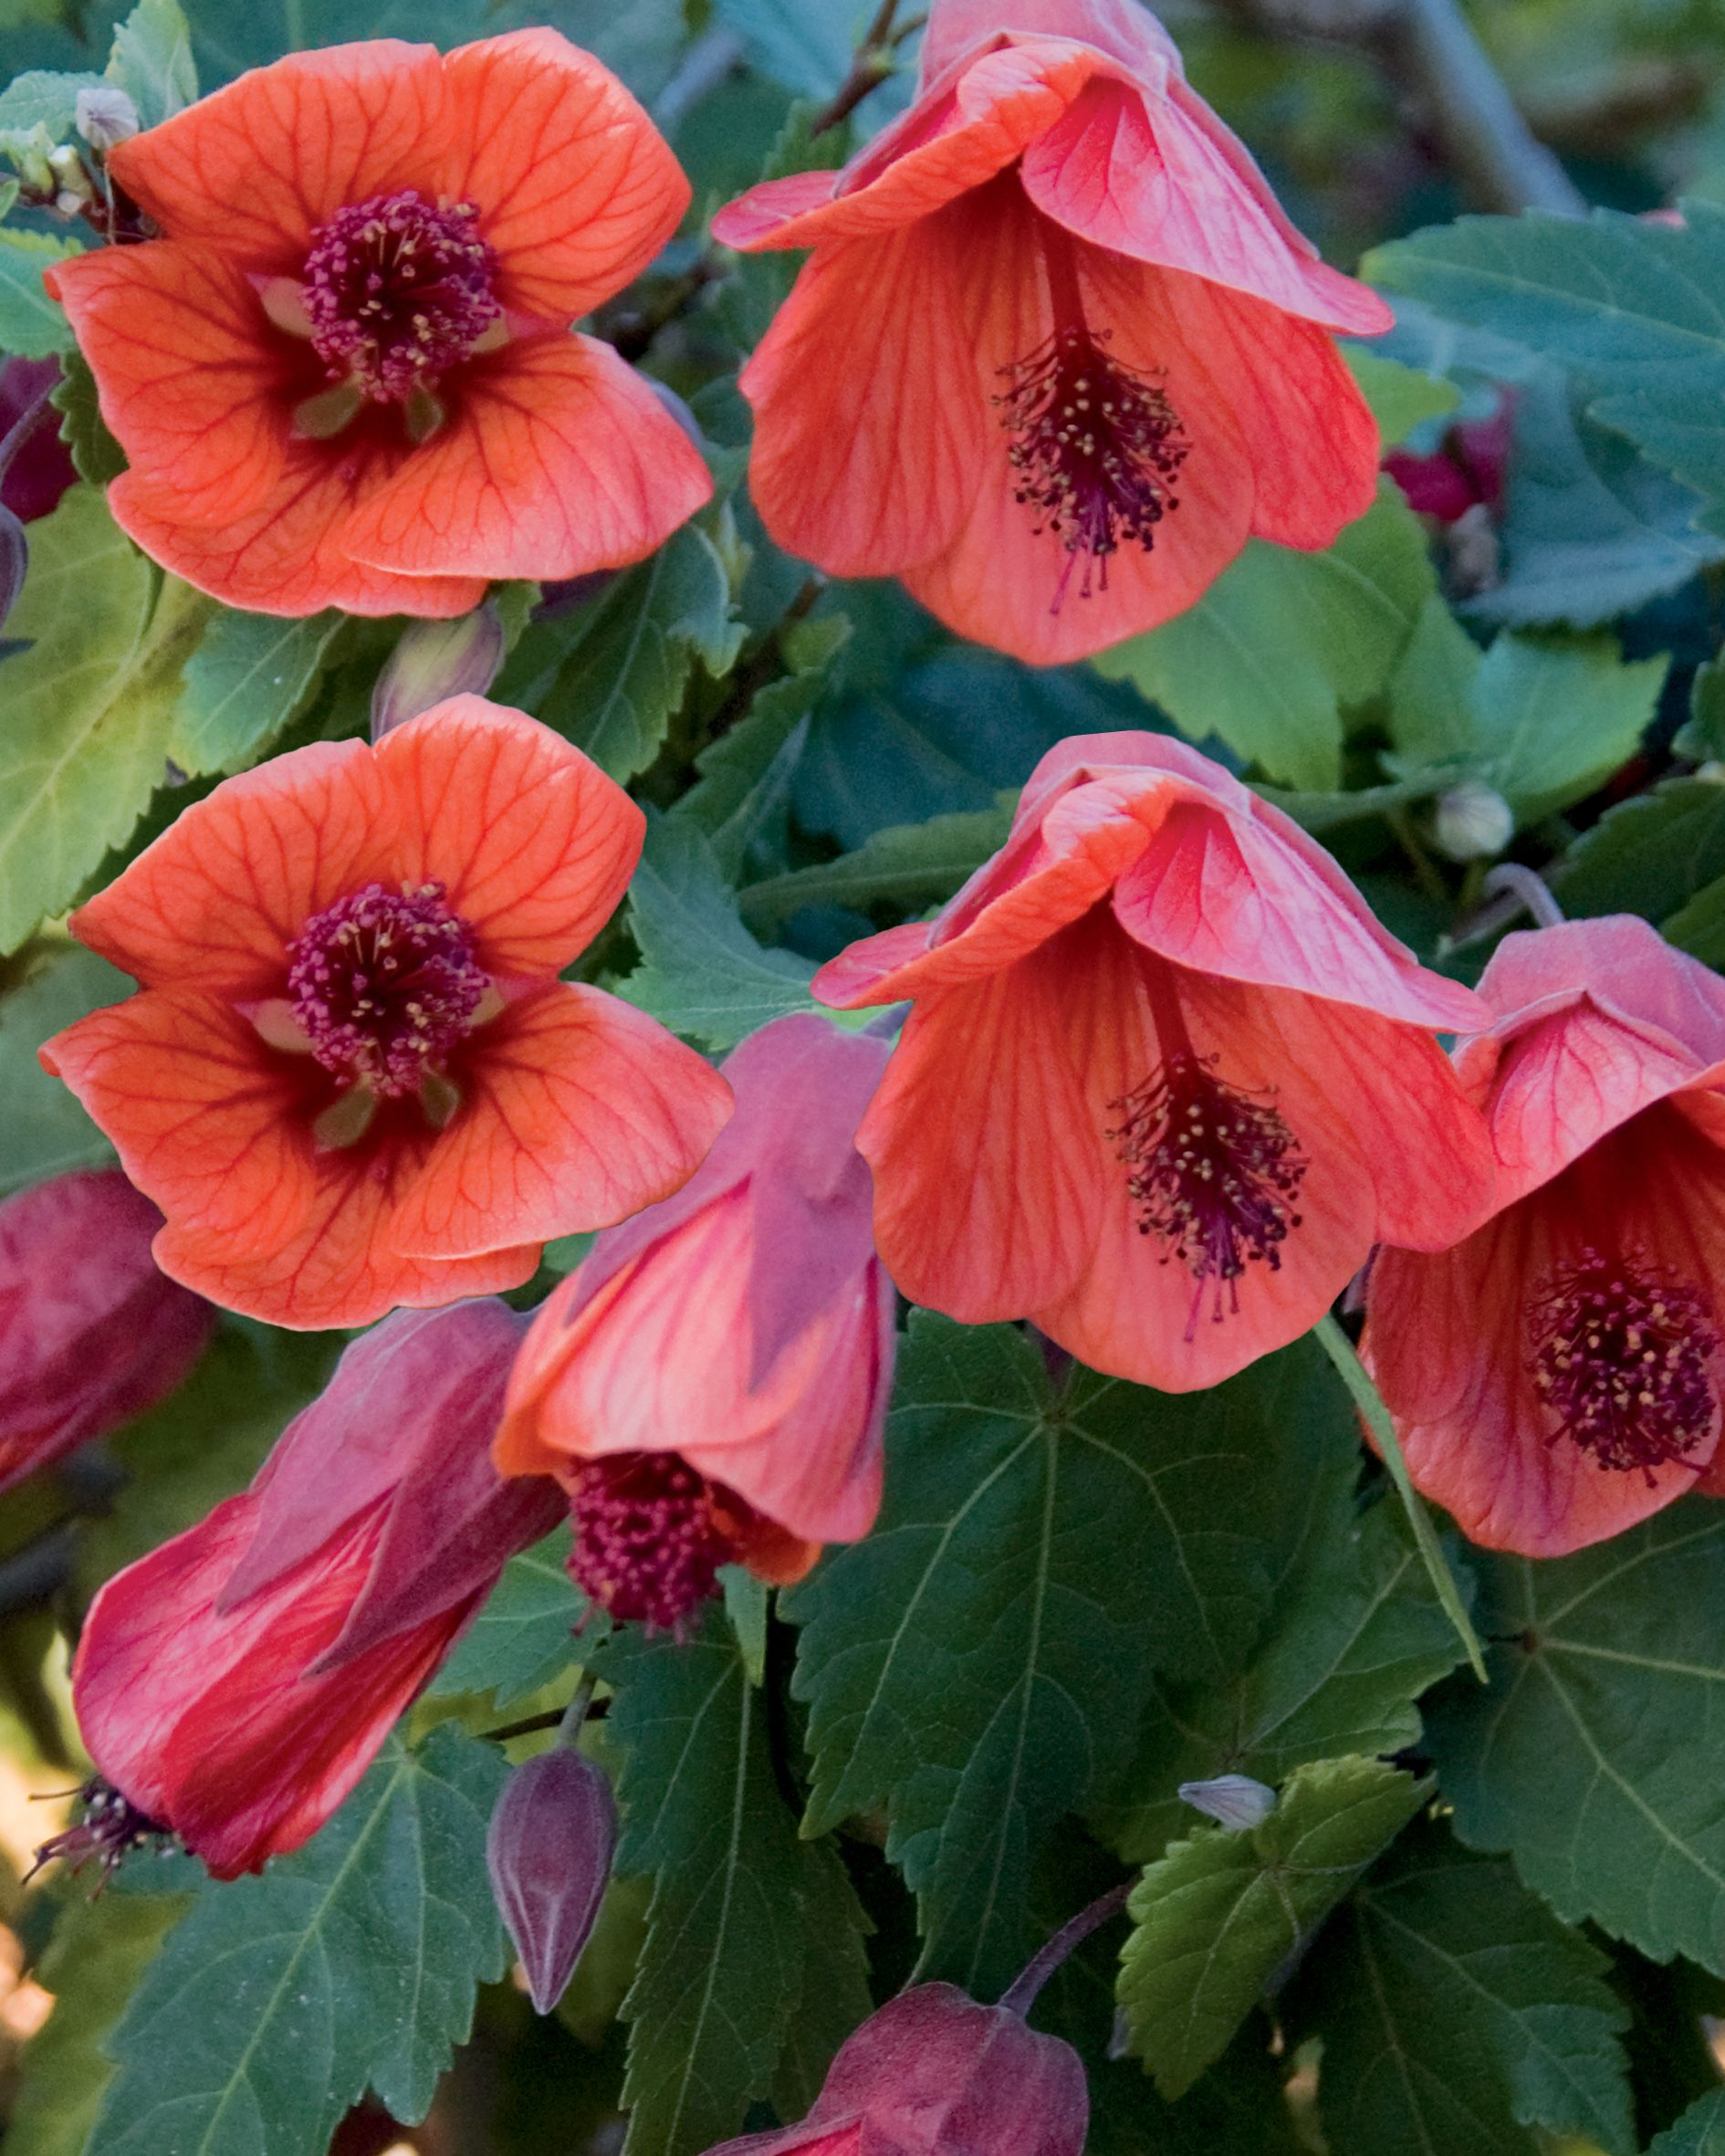 Fairycoralred Floweringmaple Abutilonhybrid Thriller